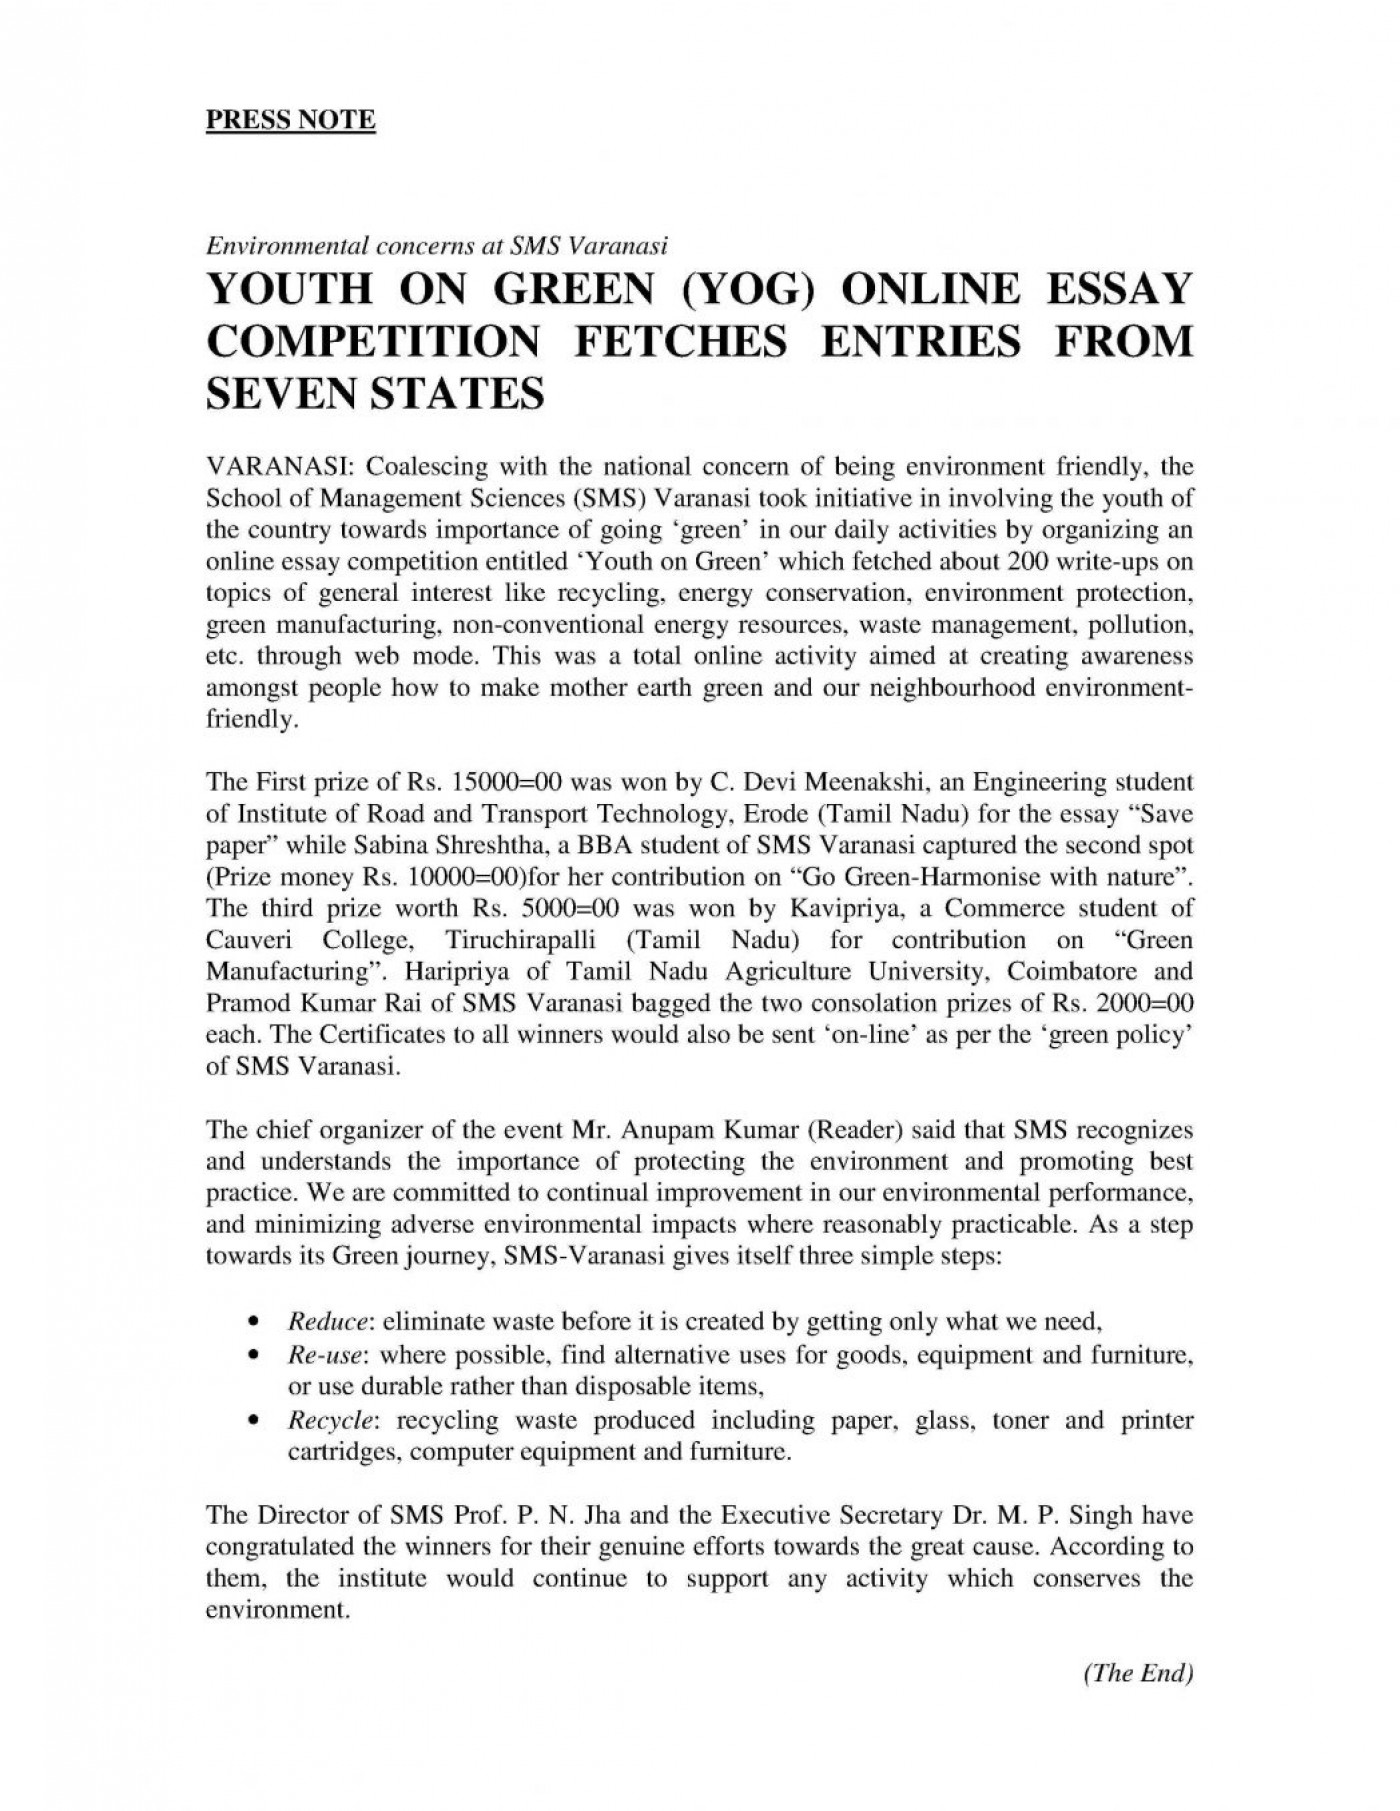 020 Best Essays For College Essay On Good Habits How Tot Application Online Yog Press Re About Yourself Examples Your Background Failure Prompt Off Hook 1048x1356 Example Amazing To Start An A Definition With Quote 1400